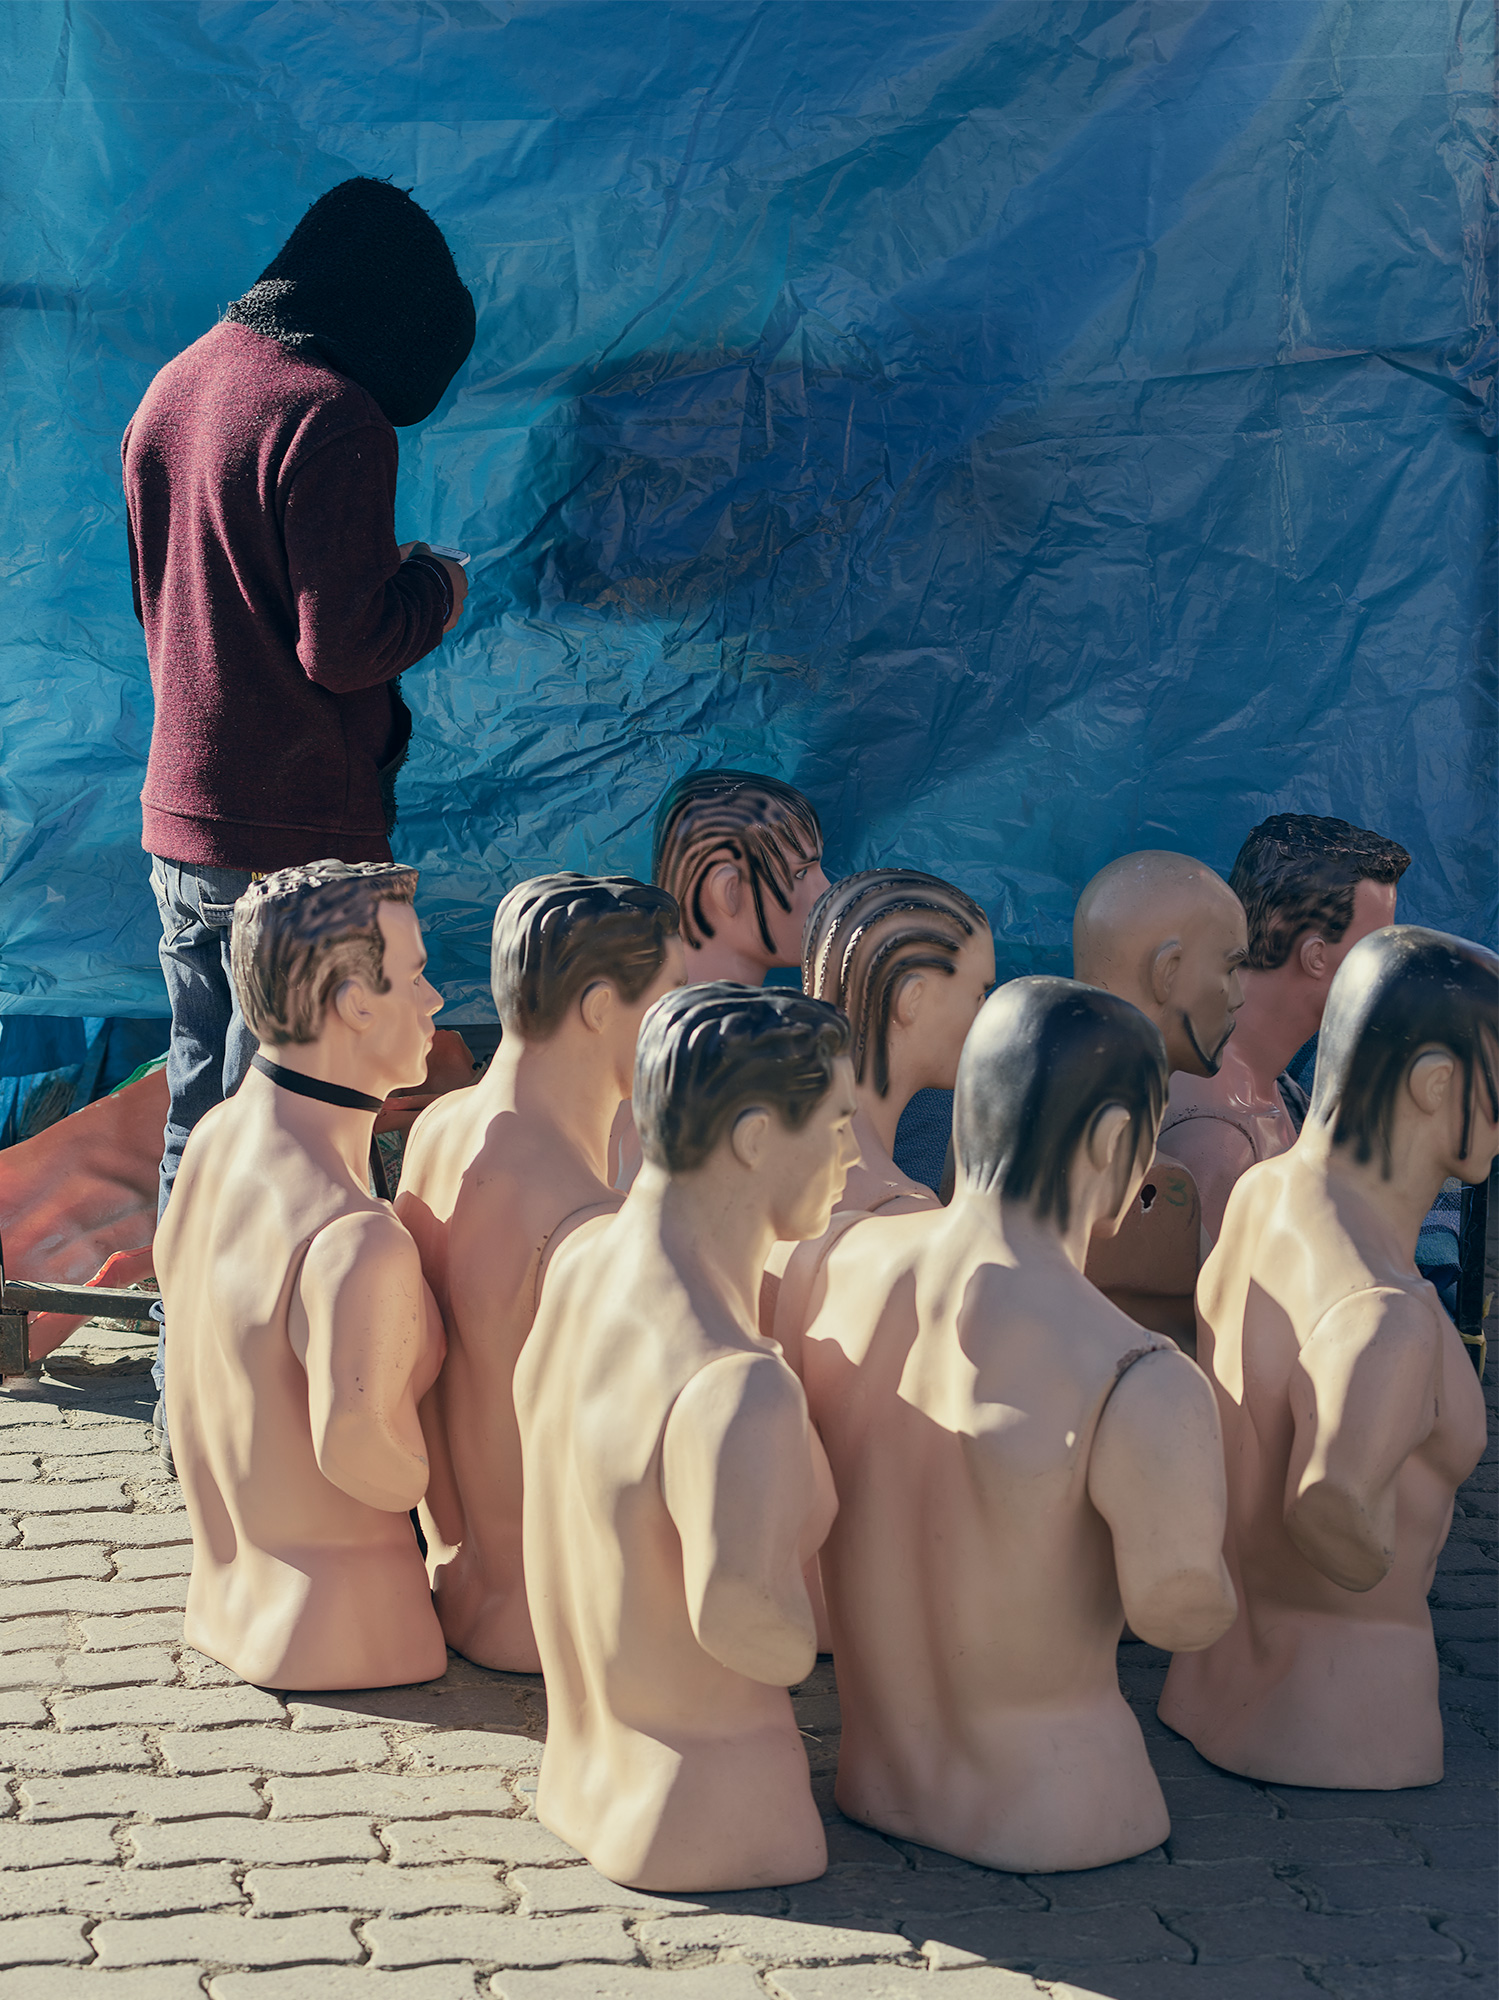 Man and mannequins in Bolivia